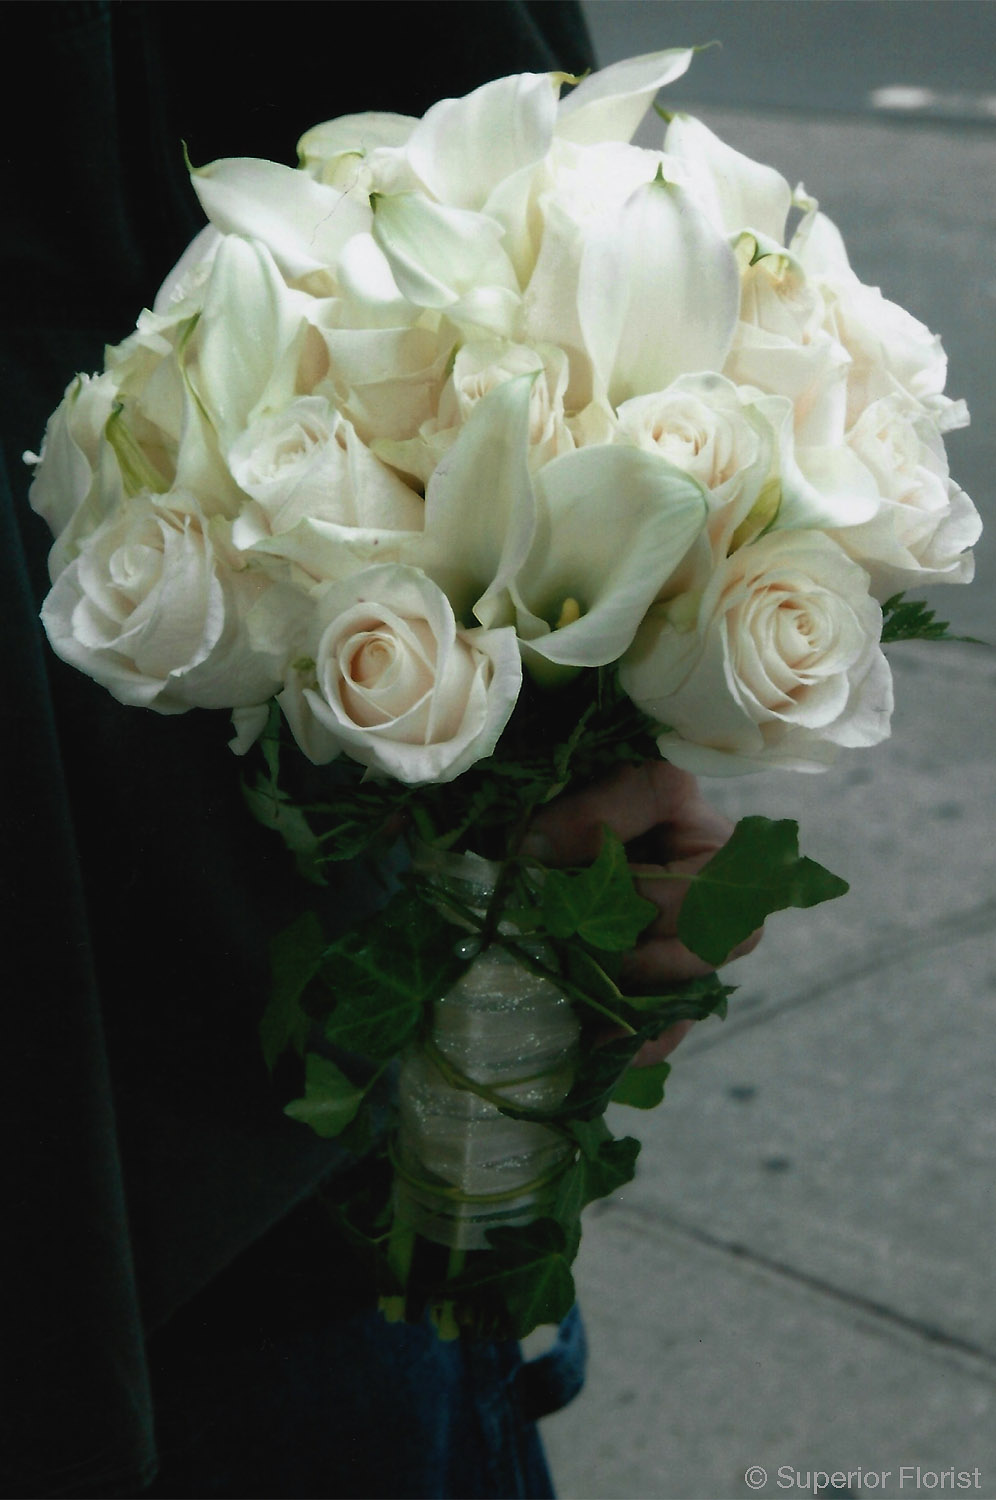 Superior Florist – Weddings – Personal Flowers: Hand tied bouquet of ivory roses, mini Callas and ivy.